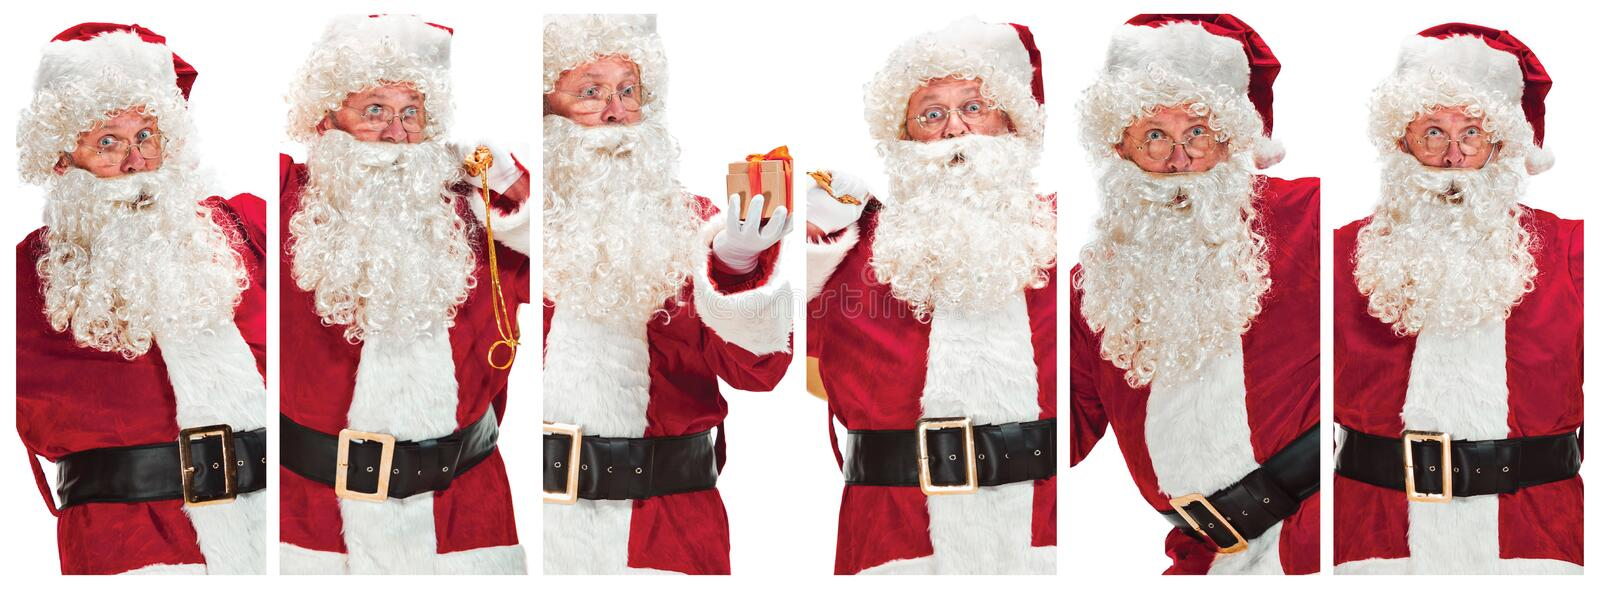 The collage of man in Santa Claus Costume royalty free stock photography